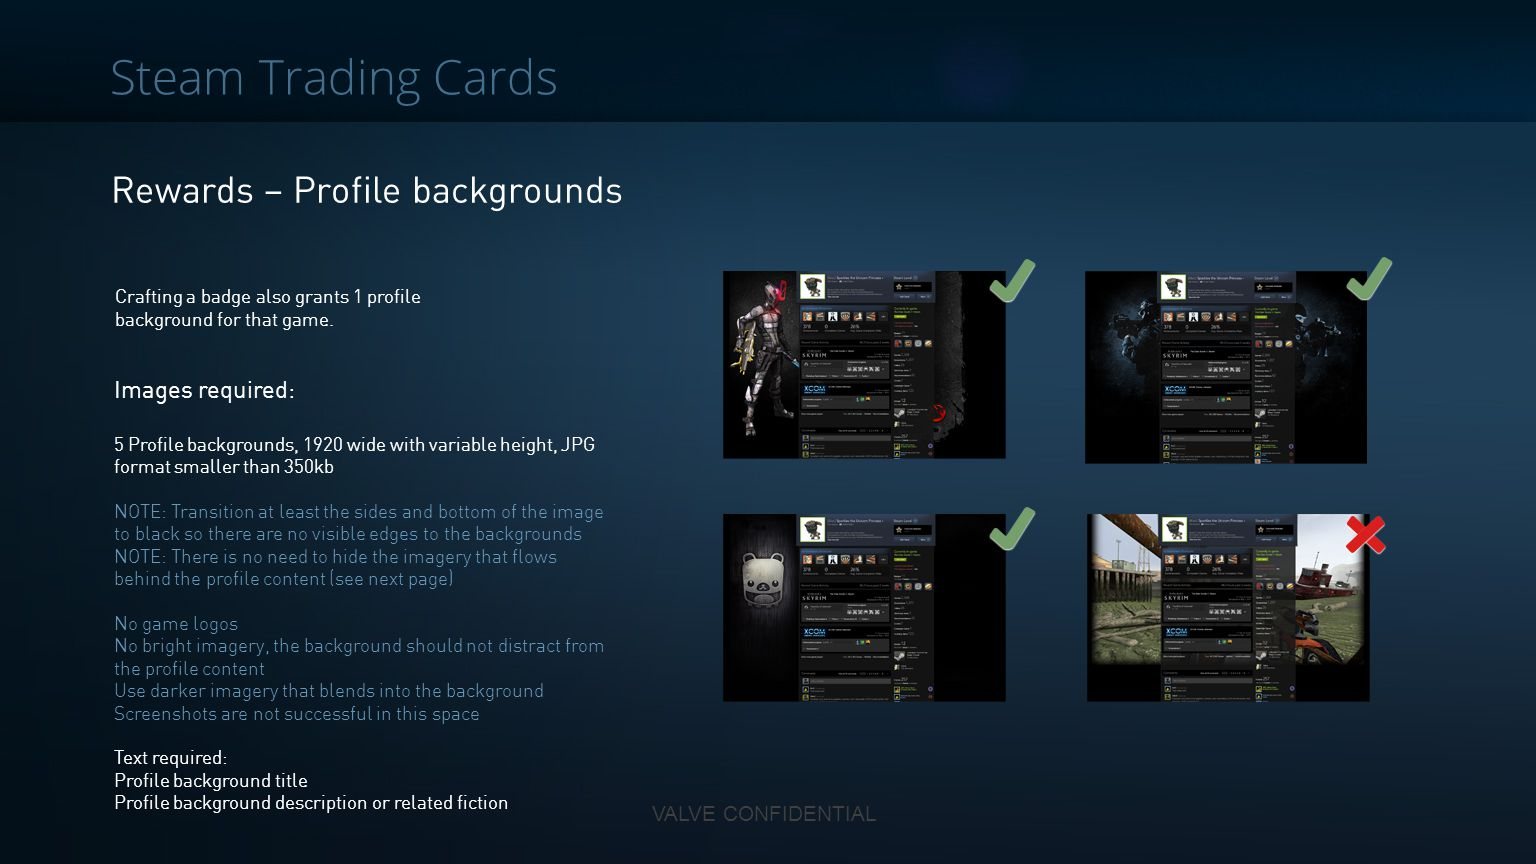 Steam Trading Cards Rewards – Profile backgrounds Images required: